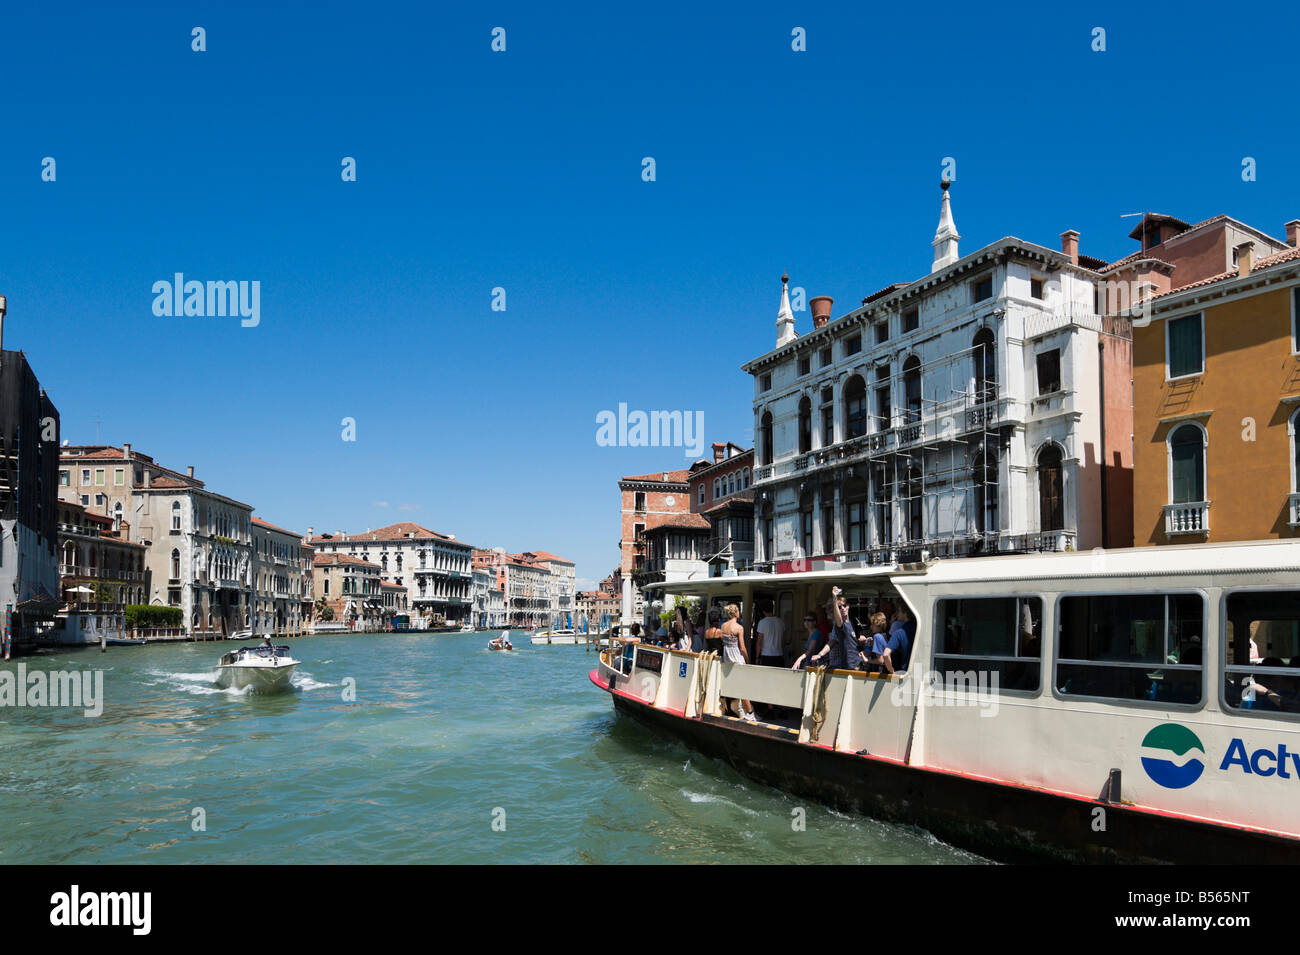 A vaporetto or water bus on the Grand Canal, Venice, Veneto, Italy - Stock Image